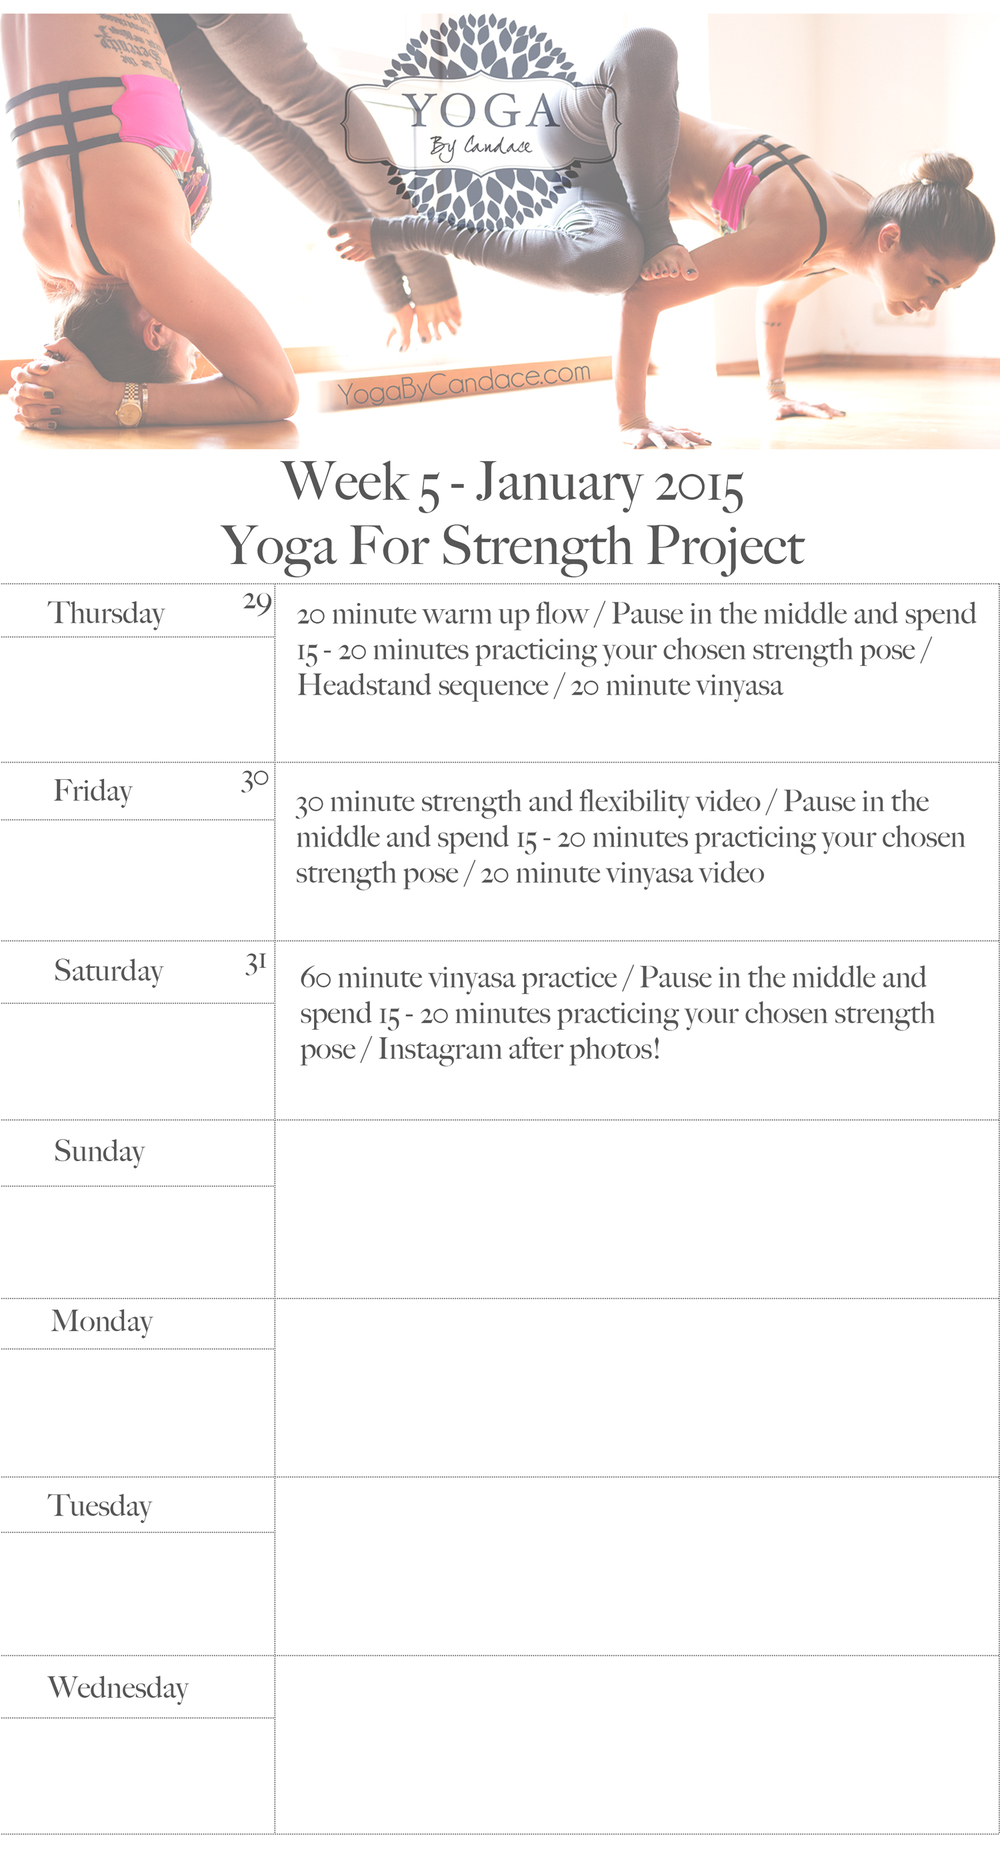 yoga-strength-project-week-5